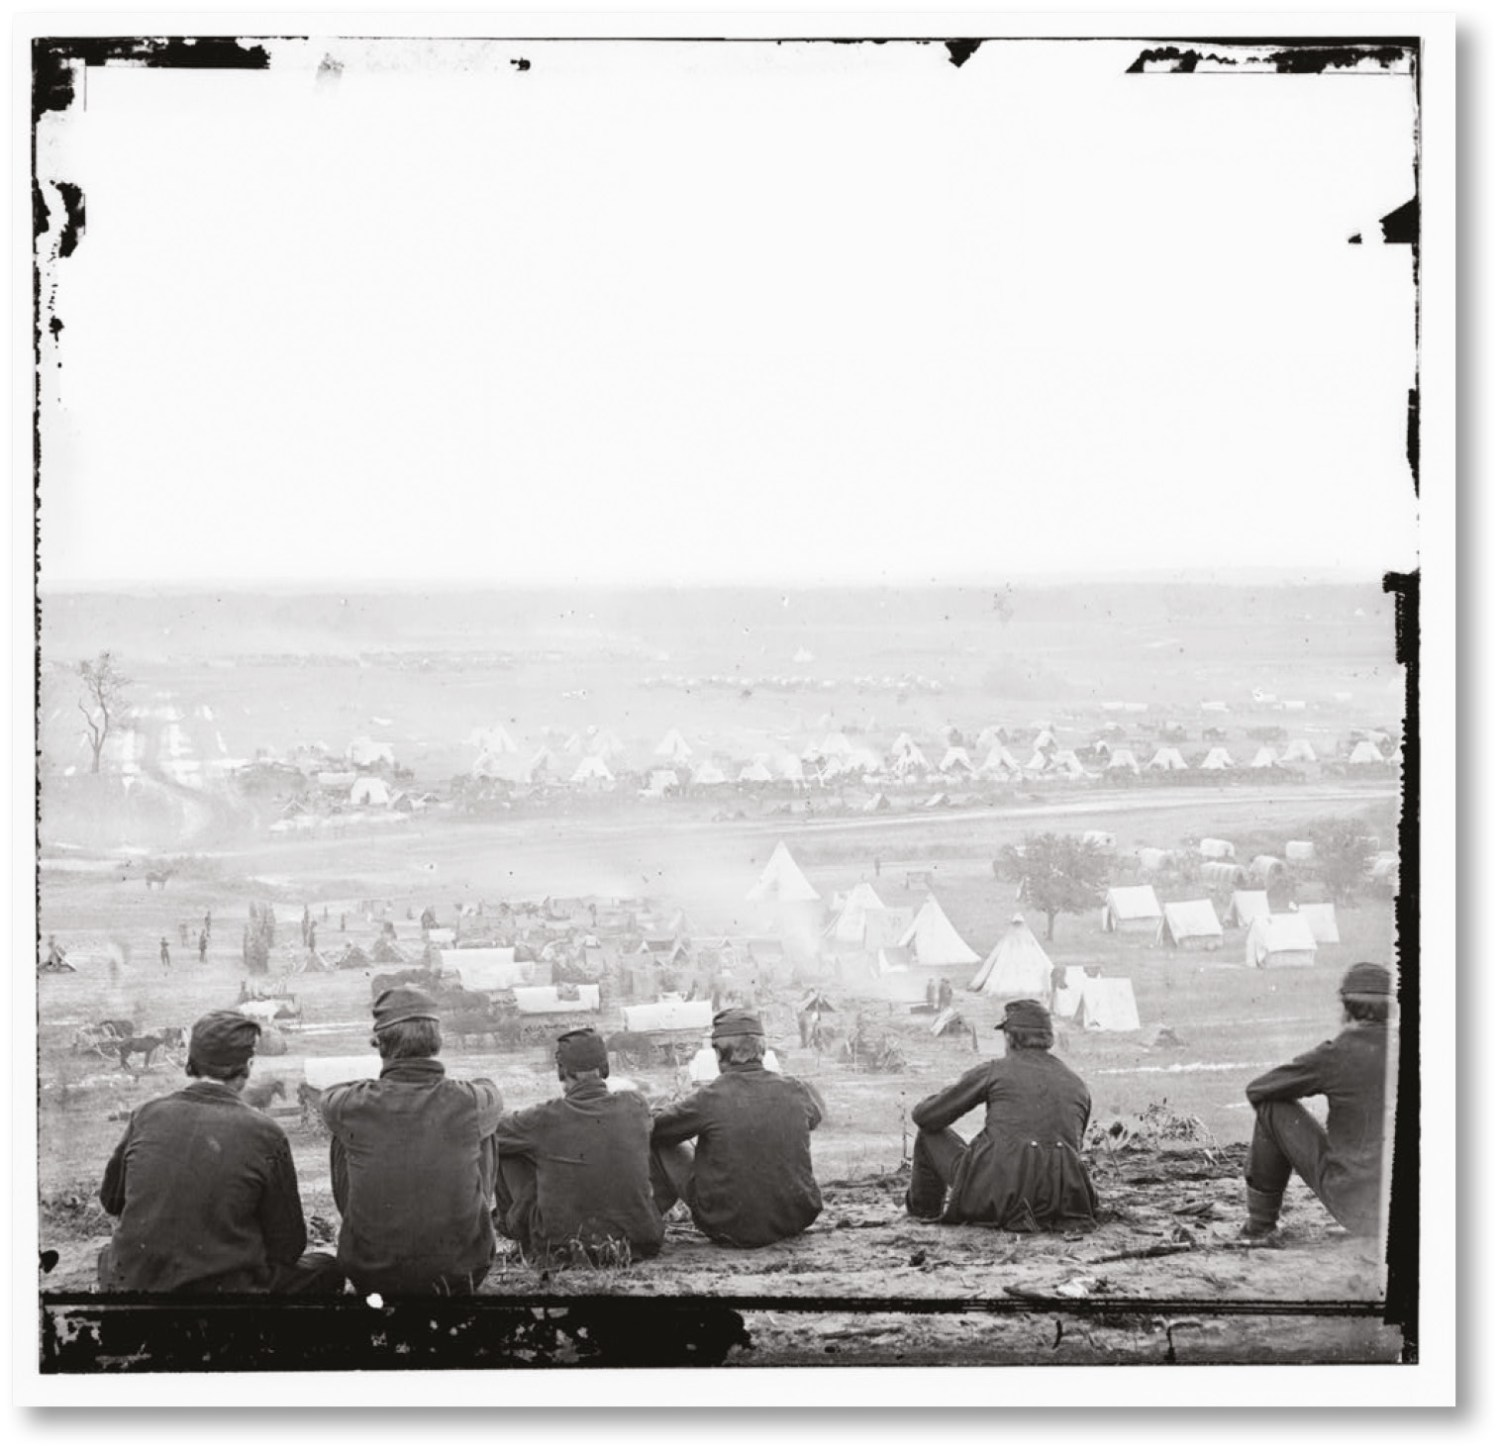 ABOVE Union camp, Cumberland Landing, Peninsula, May 1862. This photo by James Gibson captures something of the vast mobilisation of manpower and resources represented by McClellan's campaign.